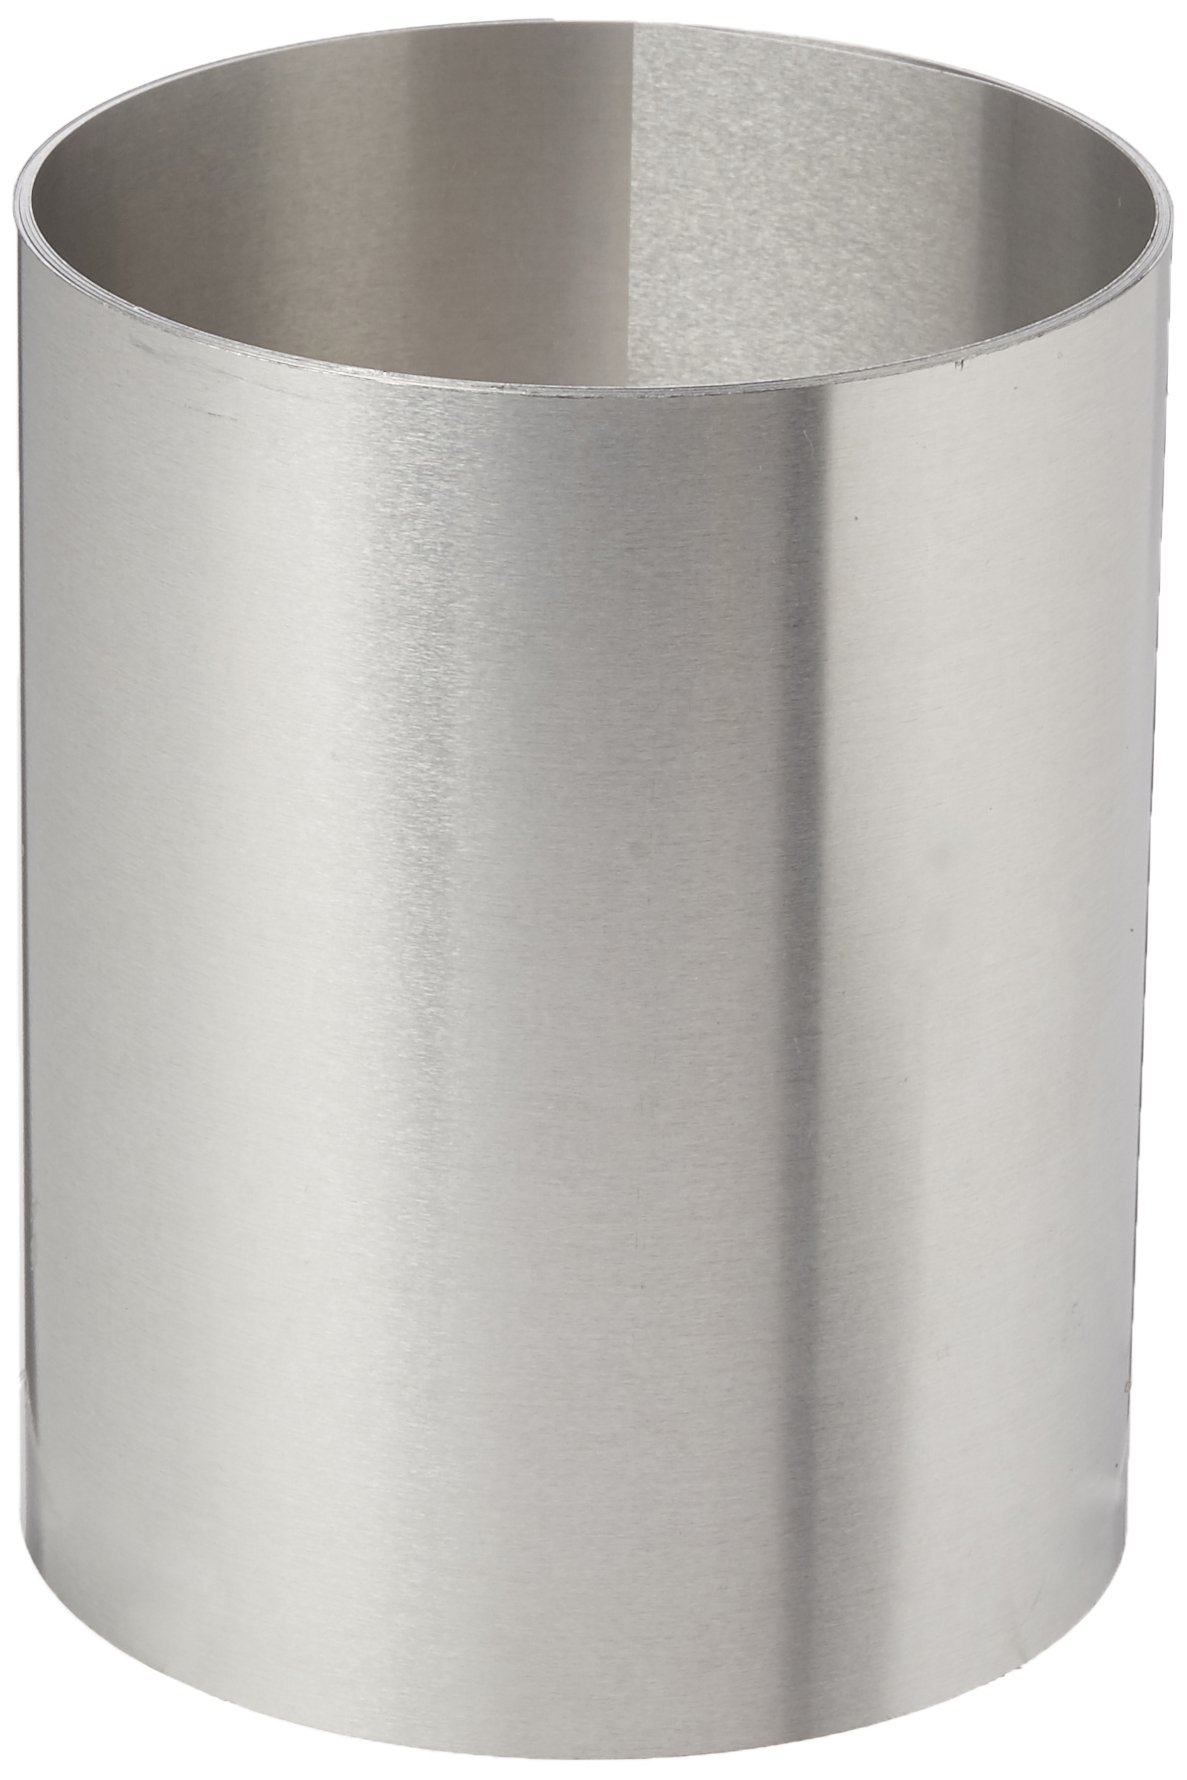 AMERIMAX HOME PRODUCTS 68306 6x10 Mill Finish Aluminum Flashing by Amerimax Home Products